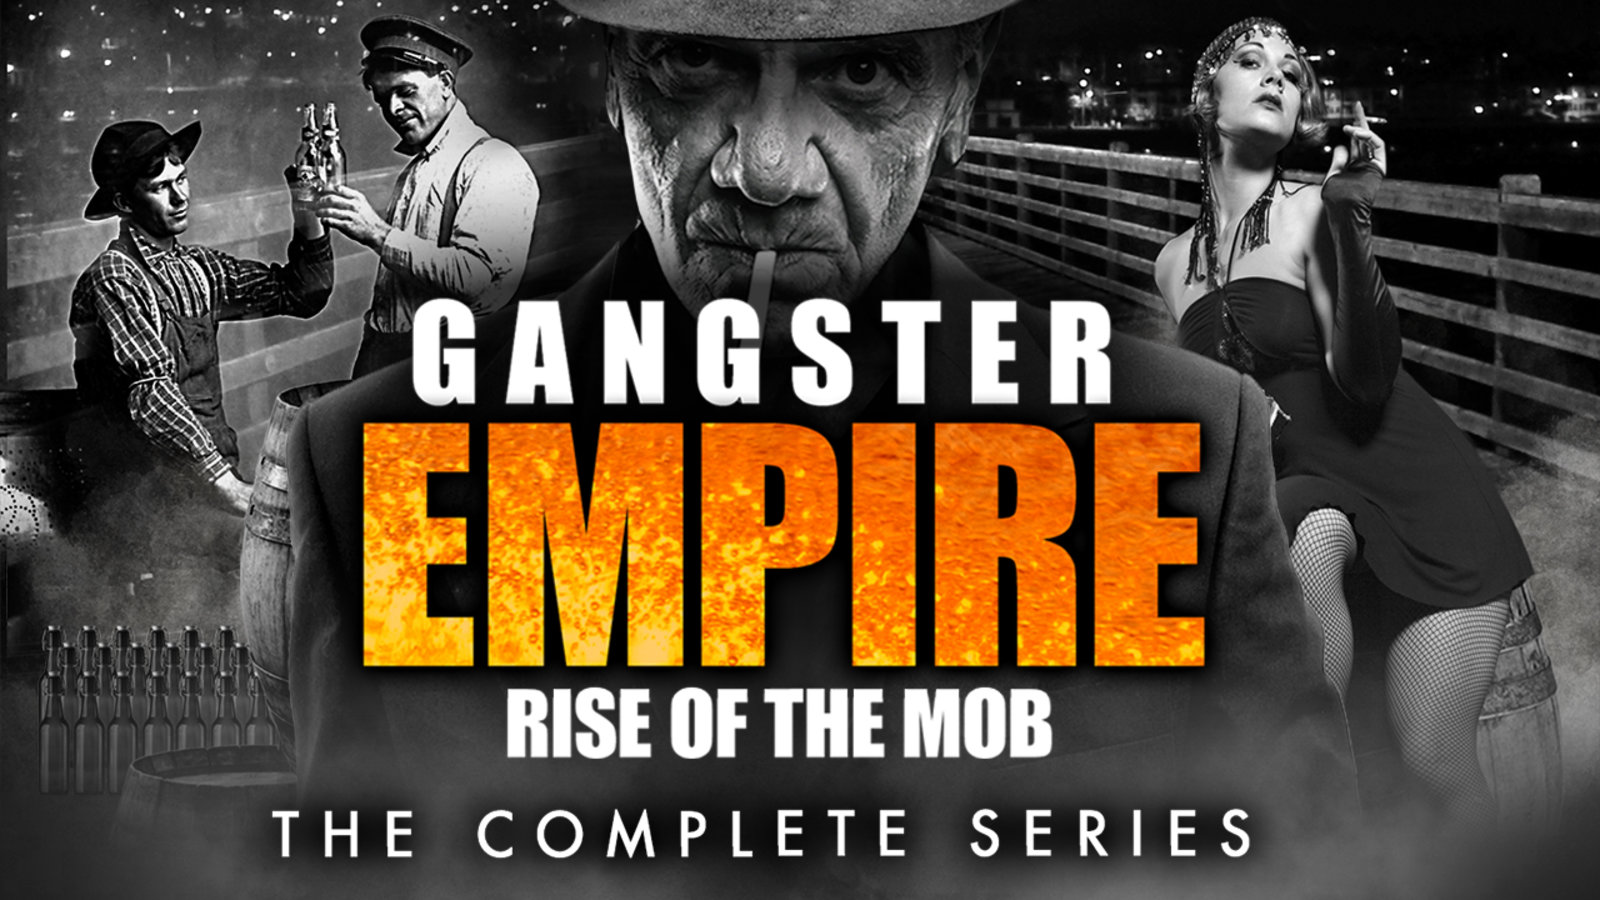 Gangster Empire - Rise of the Mob: Tea Parties, Revolution, and Anarchy